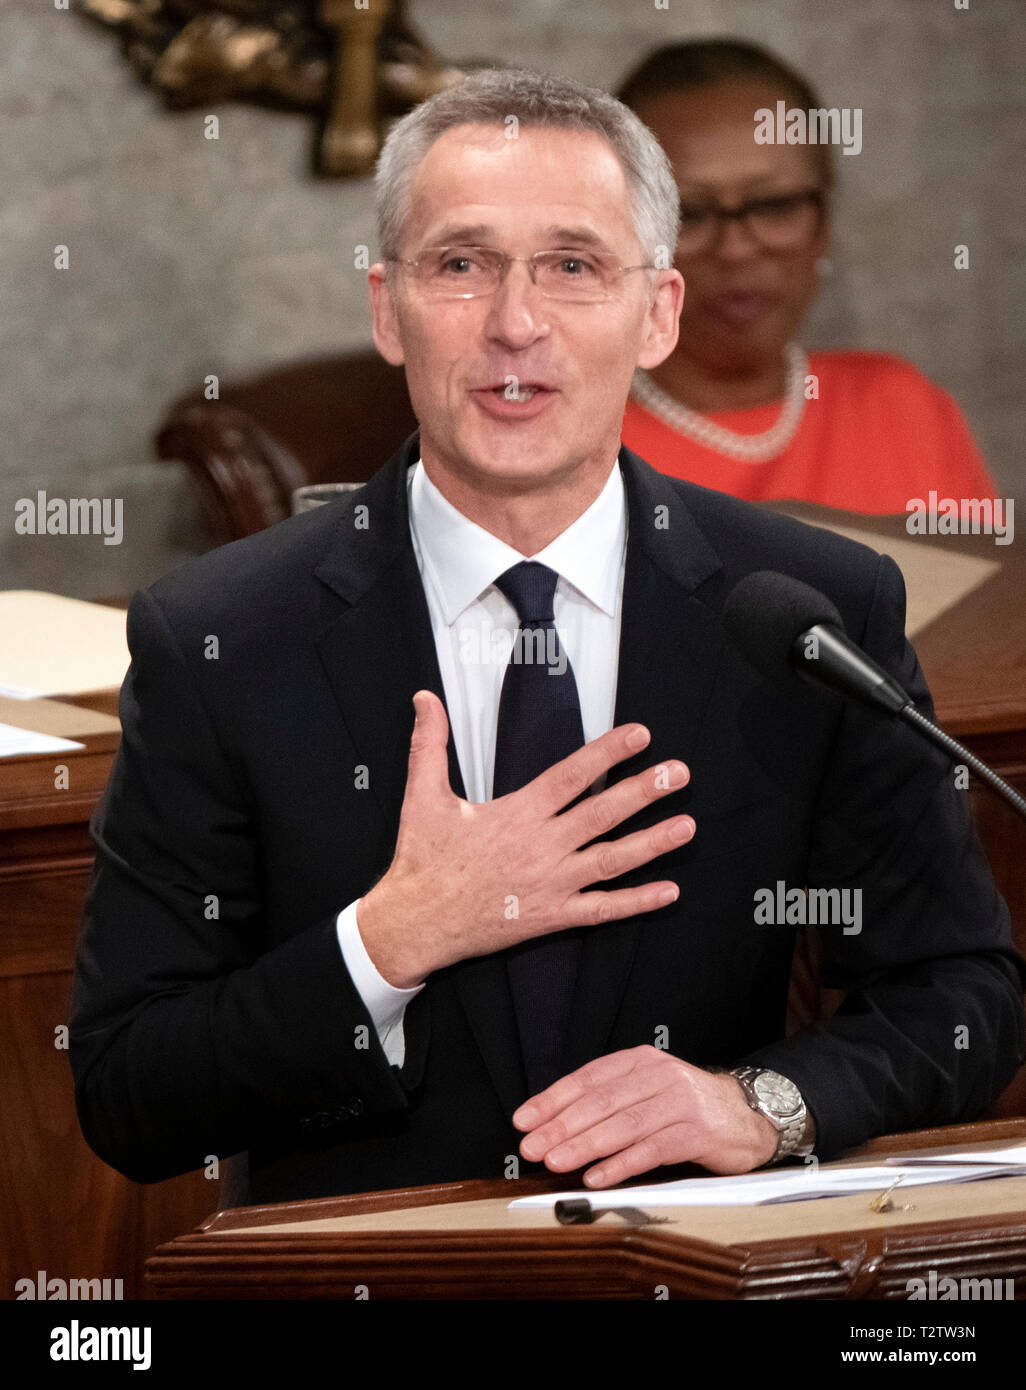 Jens Stoltenberg, Secretary General of the North Atlantic Treaty Organization (NATO) addresses a joint session of the United States Congress in the US Capitol in Washington, DC on Wednesday, April 3, 2019. Credit: Ron Sachs/CNP /MediaPunch Stock Photo